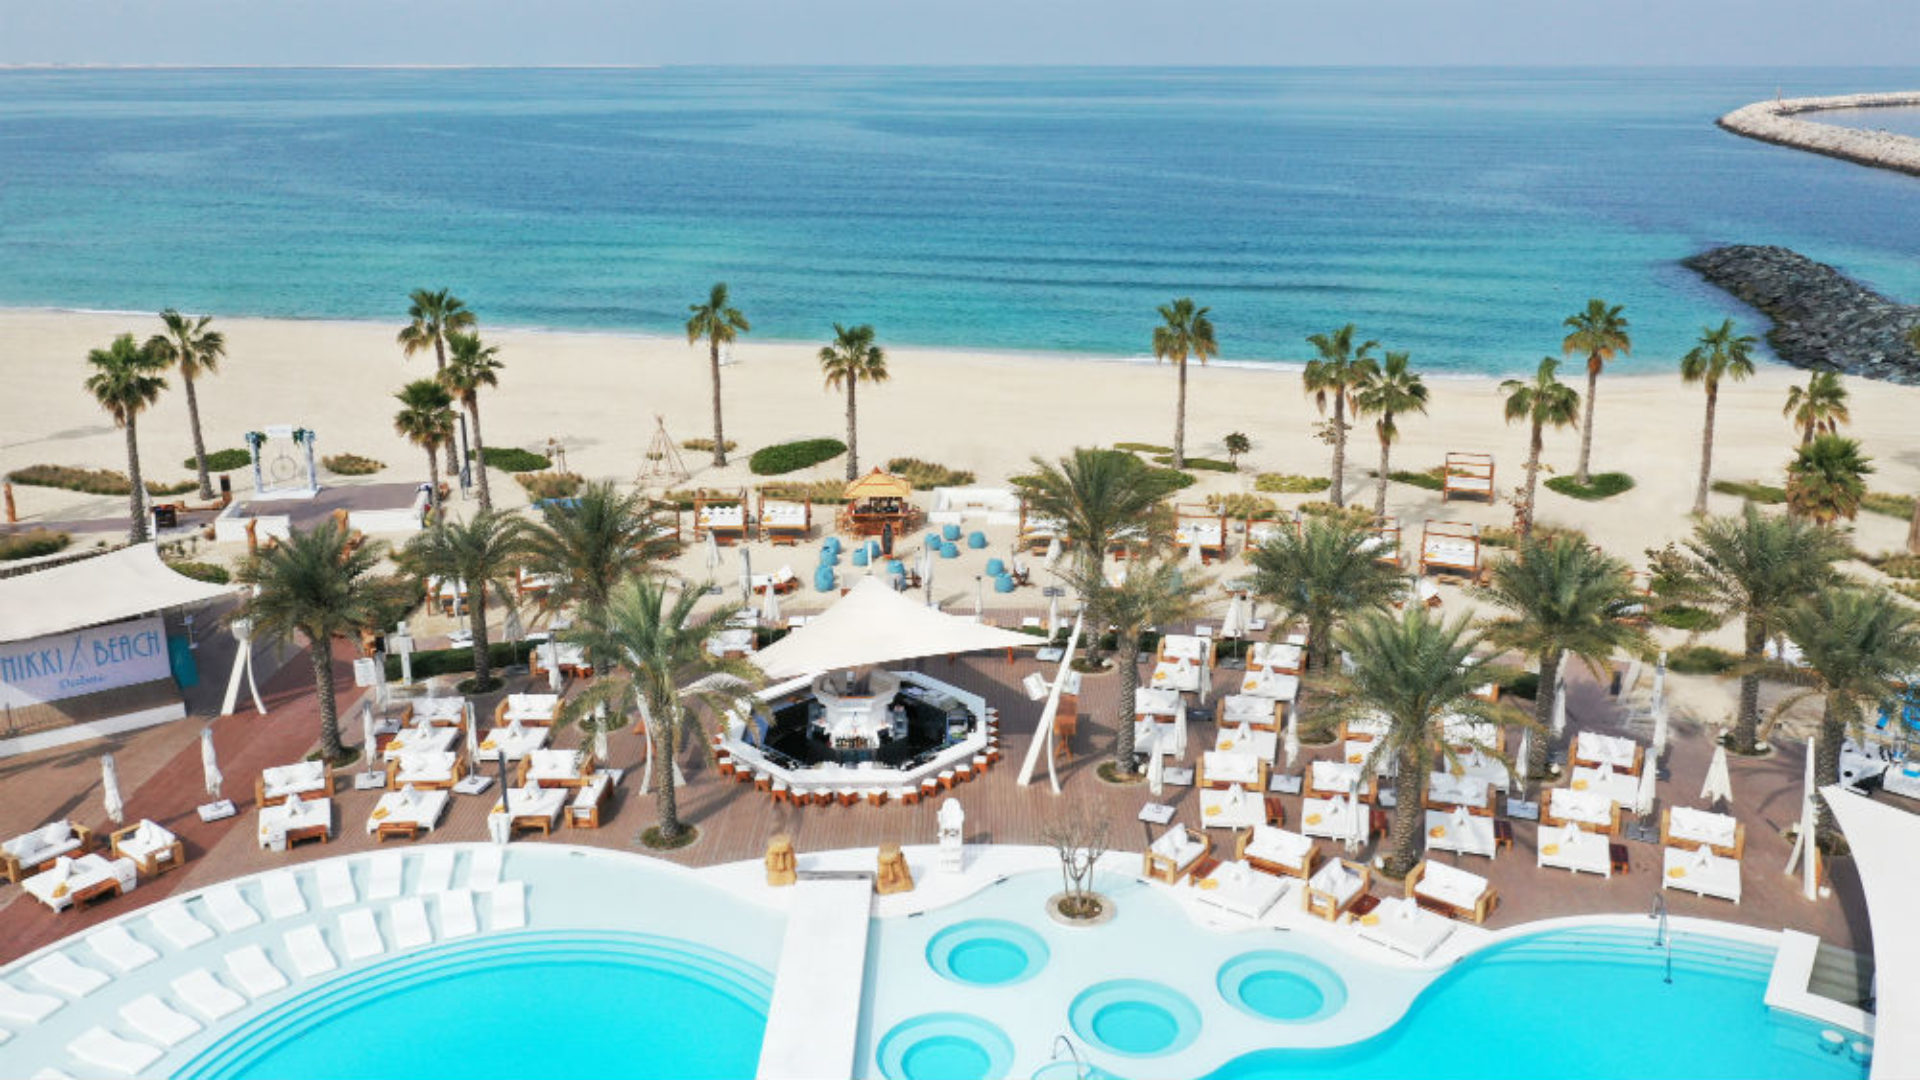 Aerial view of the pool & beach at the Beach Club at Nikki Beach Resort & Spa